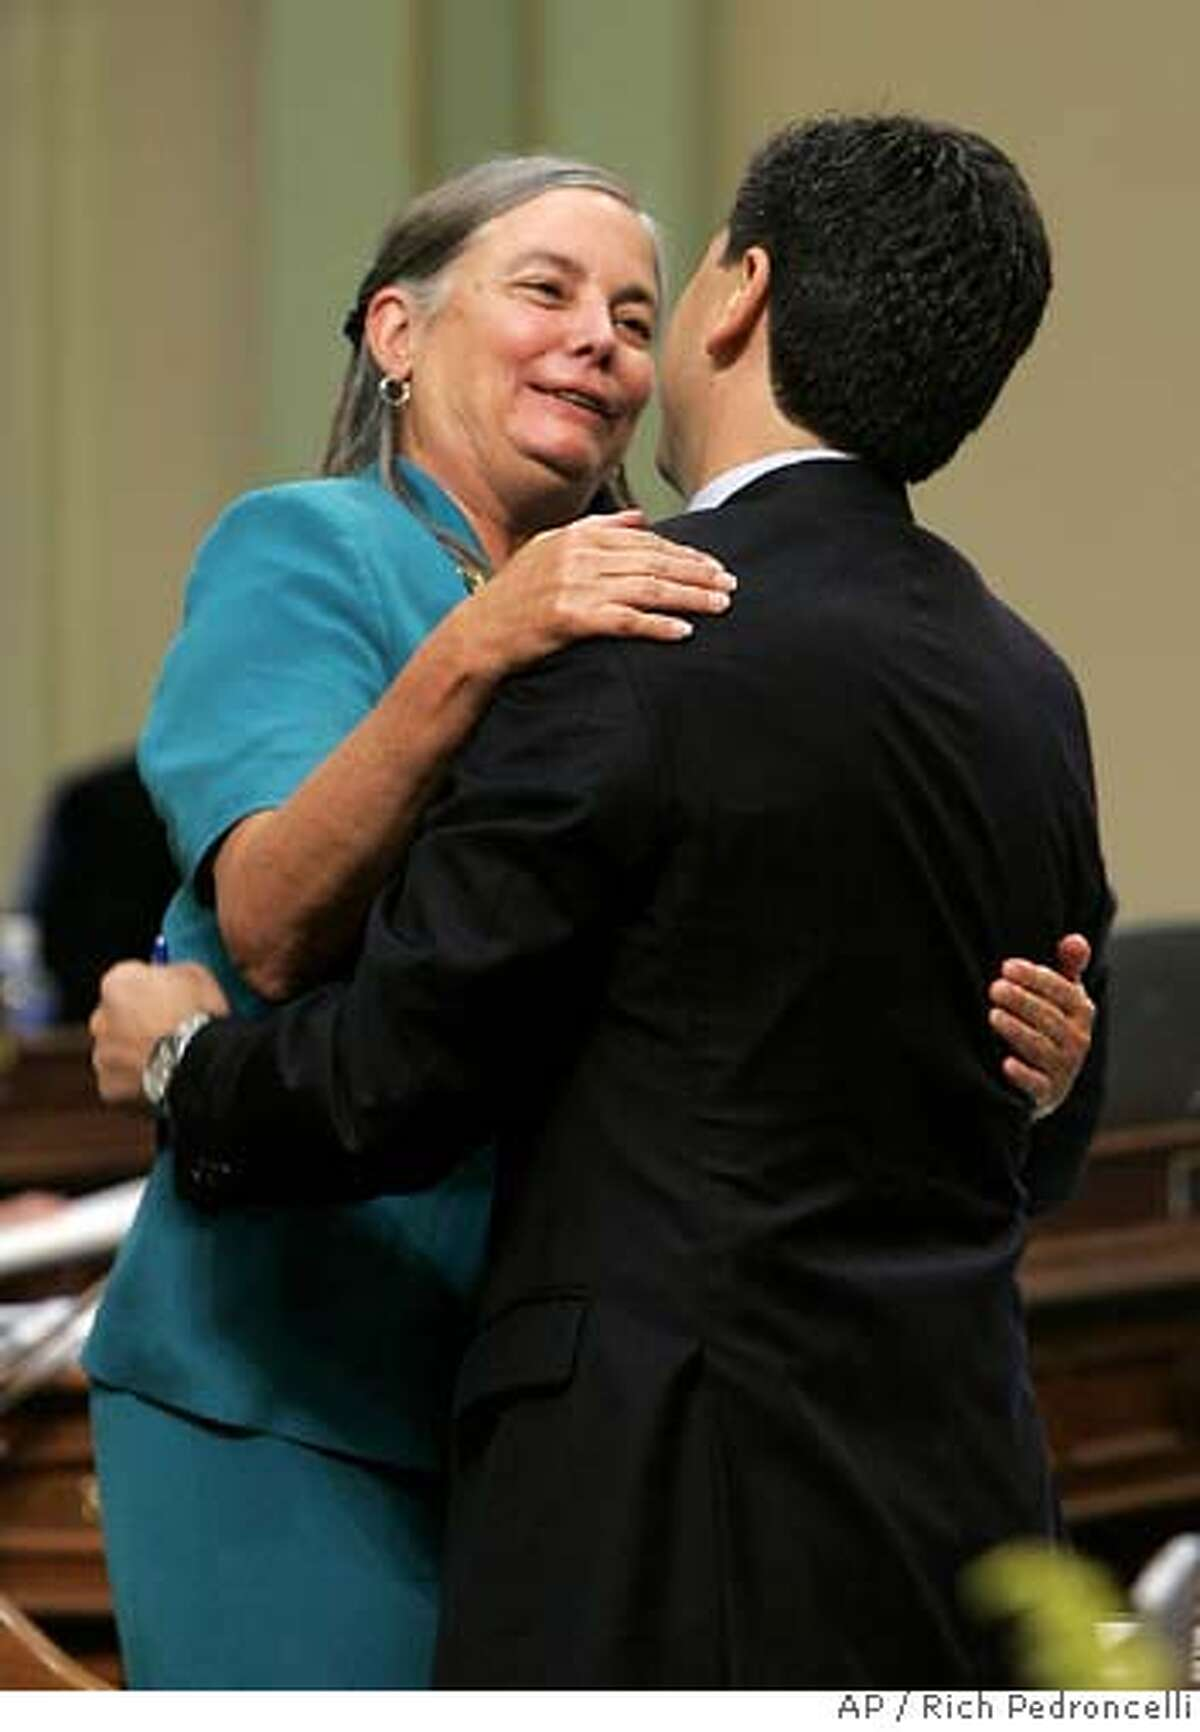 Assembly Speaker Fabian Nunez, D-Los Angeles, right, hugs Assemblywoman Fran Pavley, D-Agoura Hills, after her global warming bill was approved by the Assembly at the Capitol in Sacramento, Calif., Thursday, Aug. 31, 2006. The measure, approved by a 47-31, will make California the first state to impose a cap on all greenhouse gas emissions, including those from industrial plants.(AP Photo/Rich Pedroncelli)